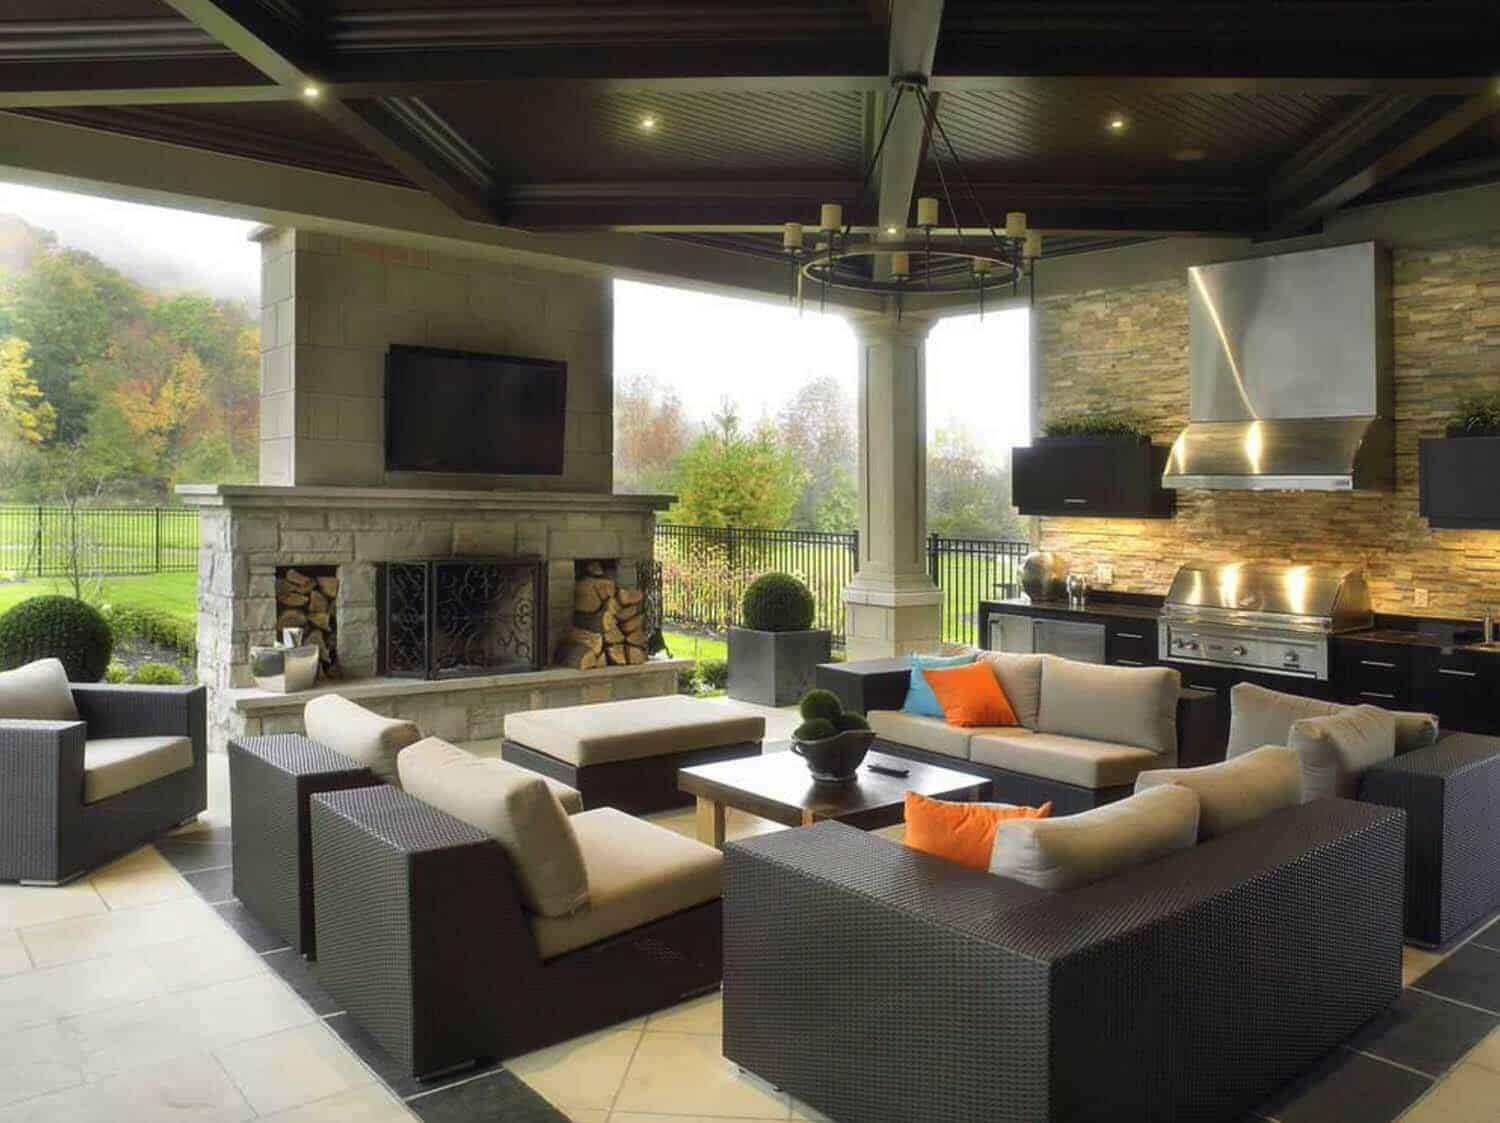 Comfortable Seating Is Set Around A Fireplace, While A Built In Kitchen  Wall Allows For Gourmet Outdoor Cooking.